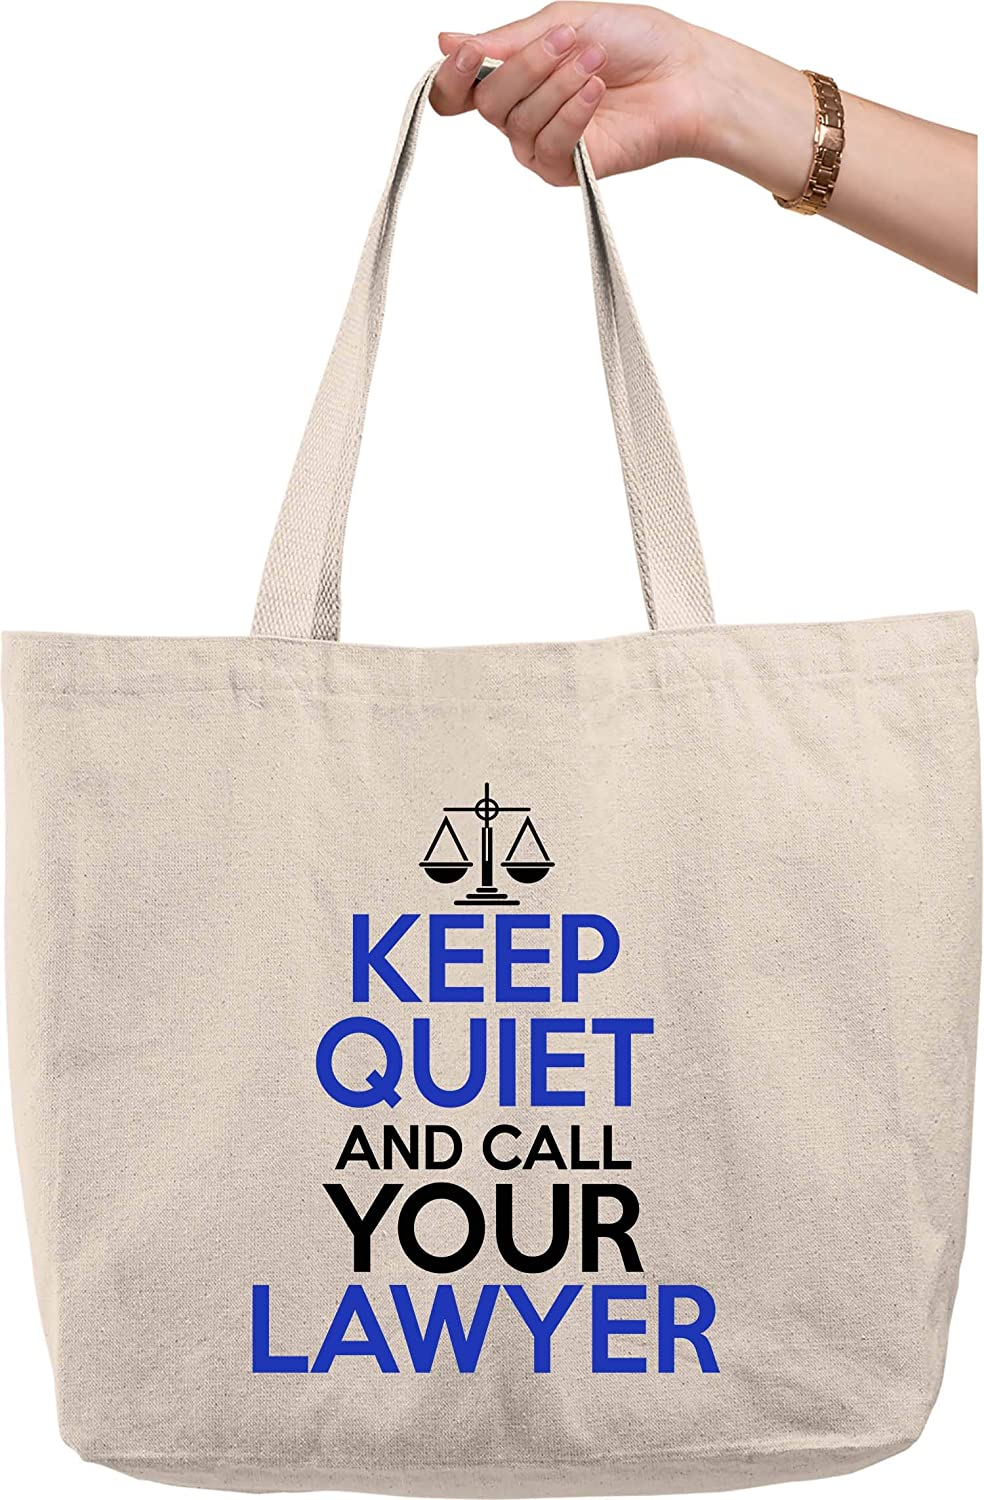 gifts-for-lawyers-tote